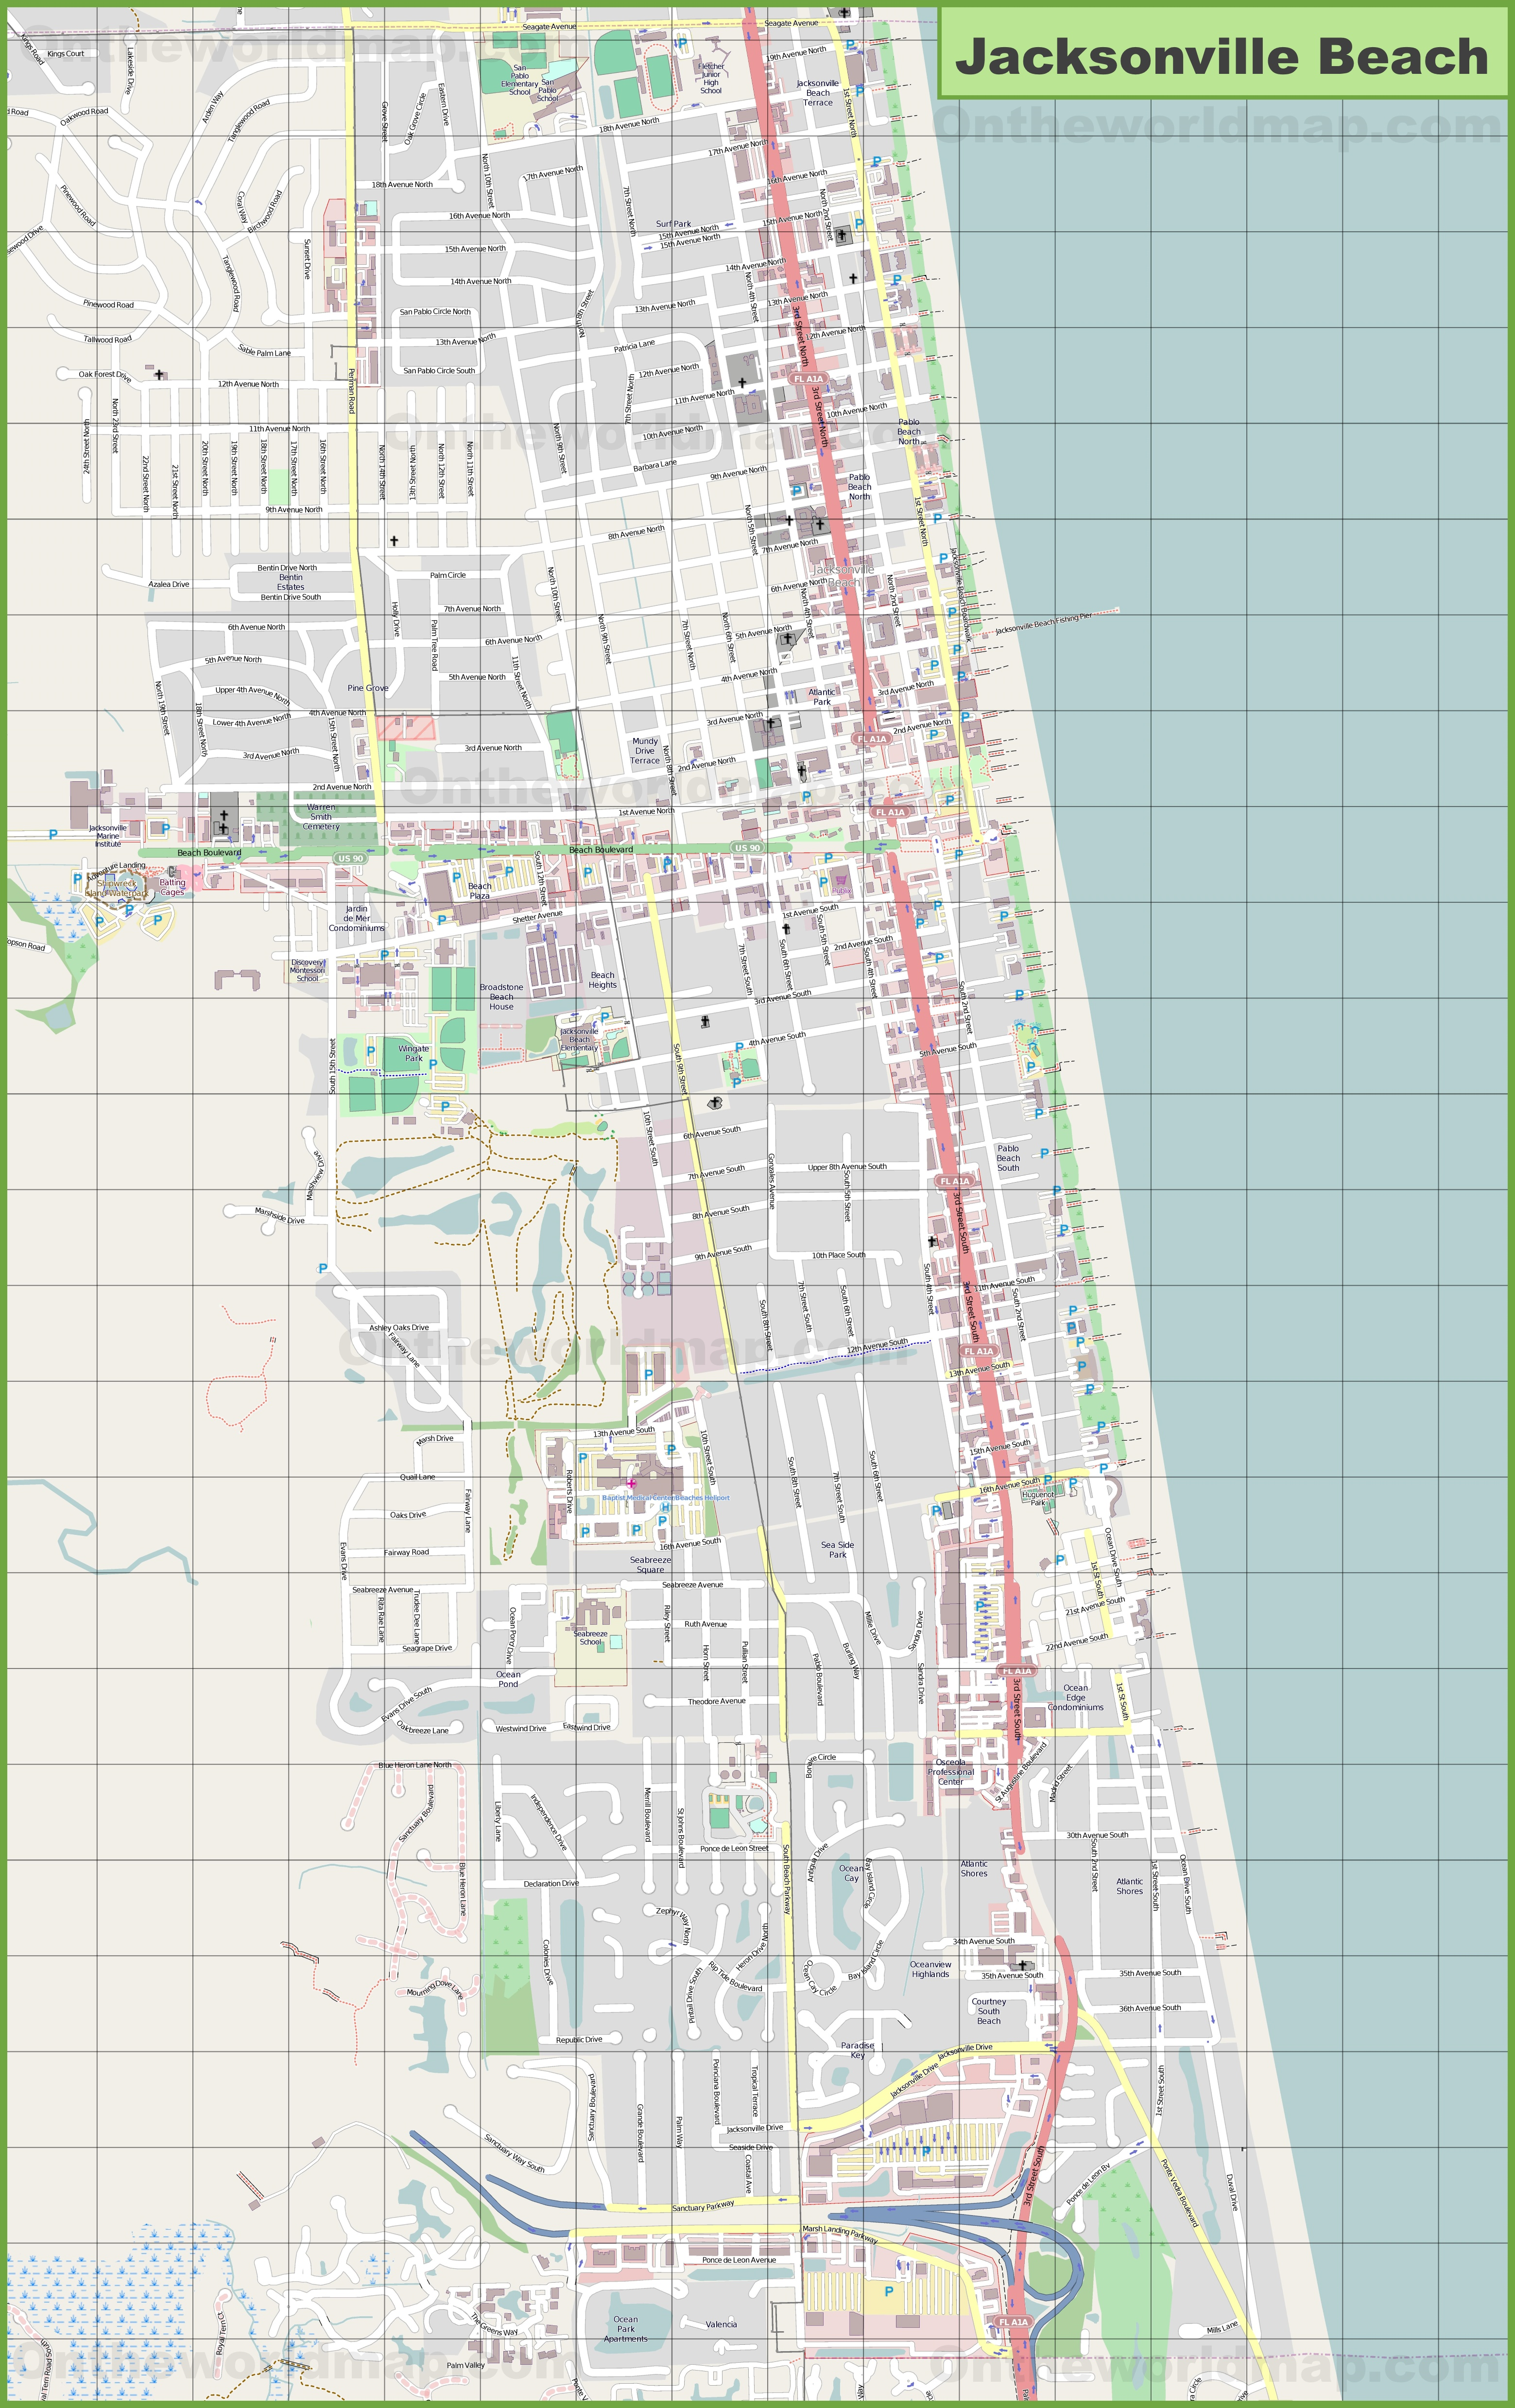 Map Of Jacksonville Beach Florida Jacksonville Beach map